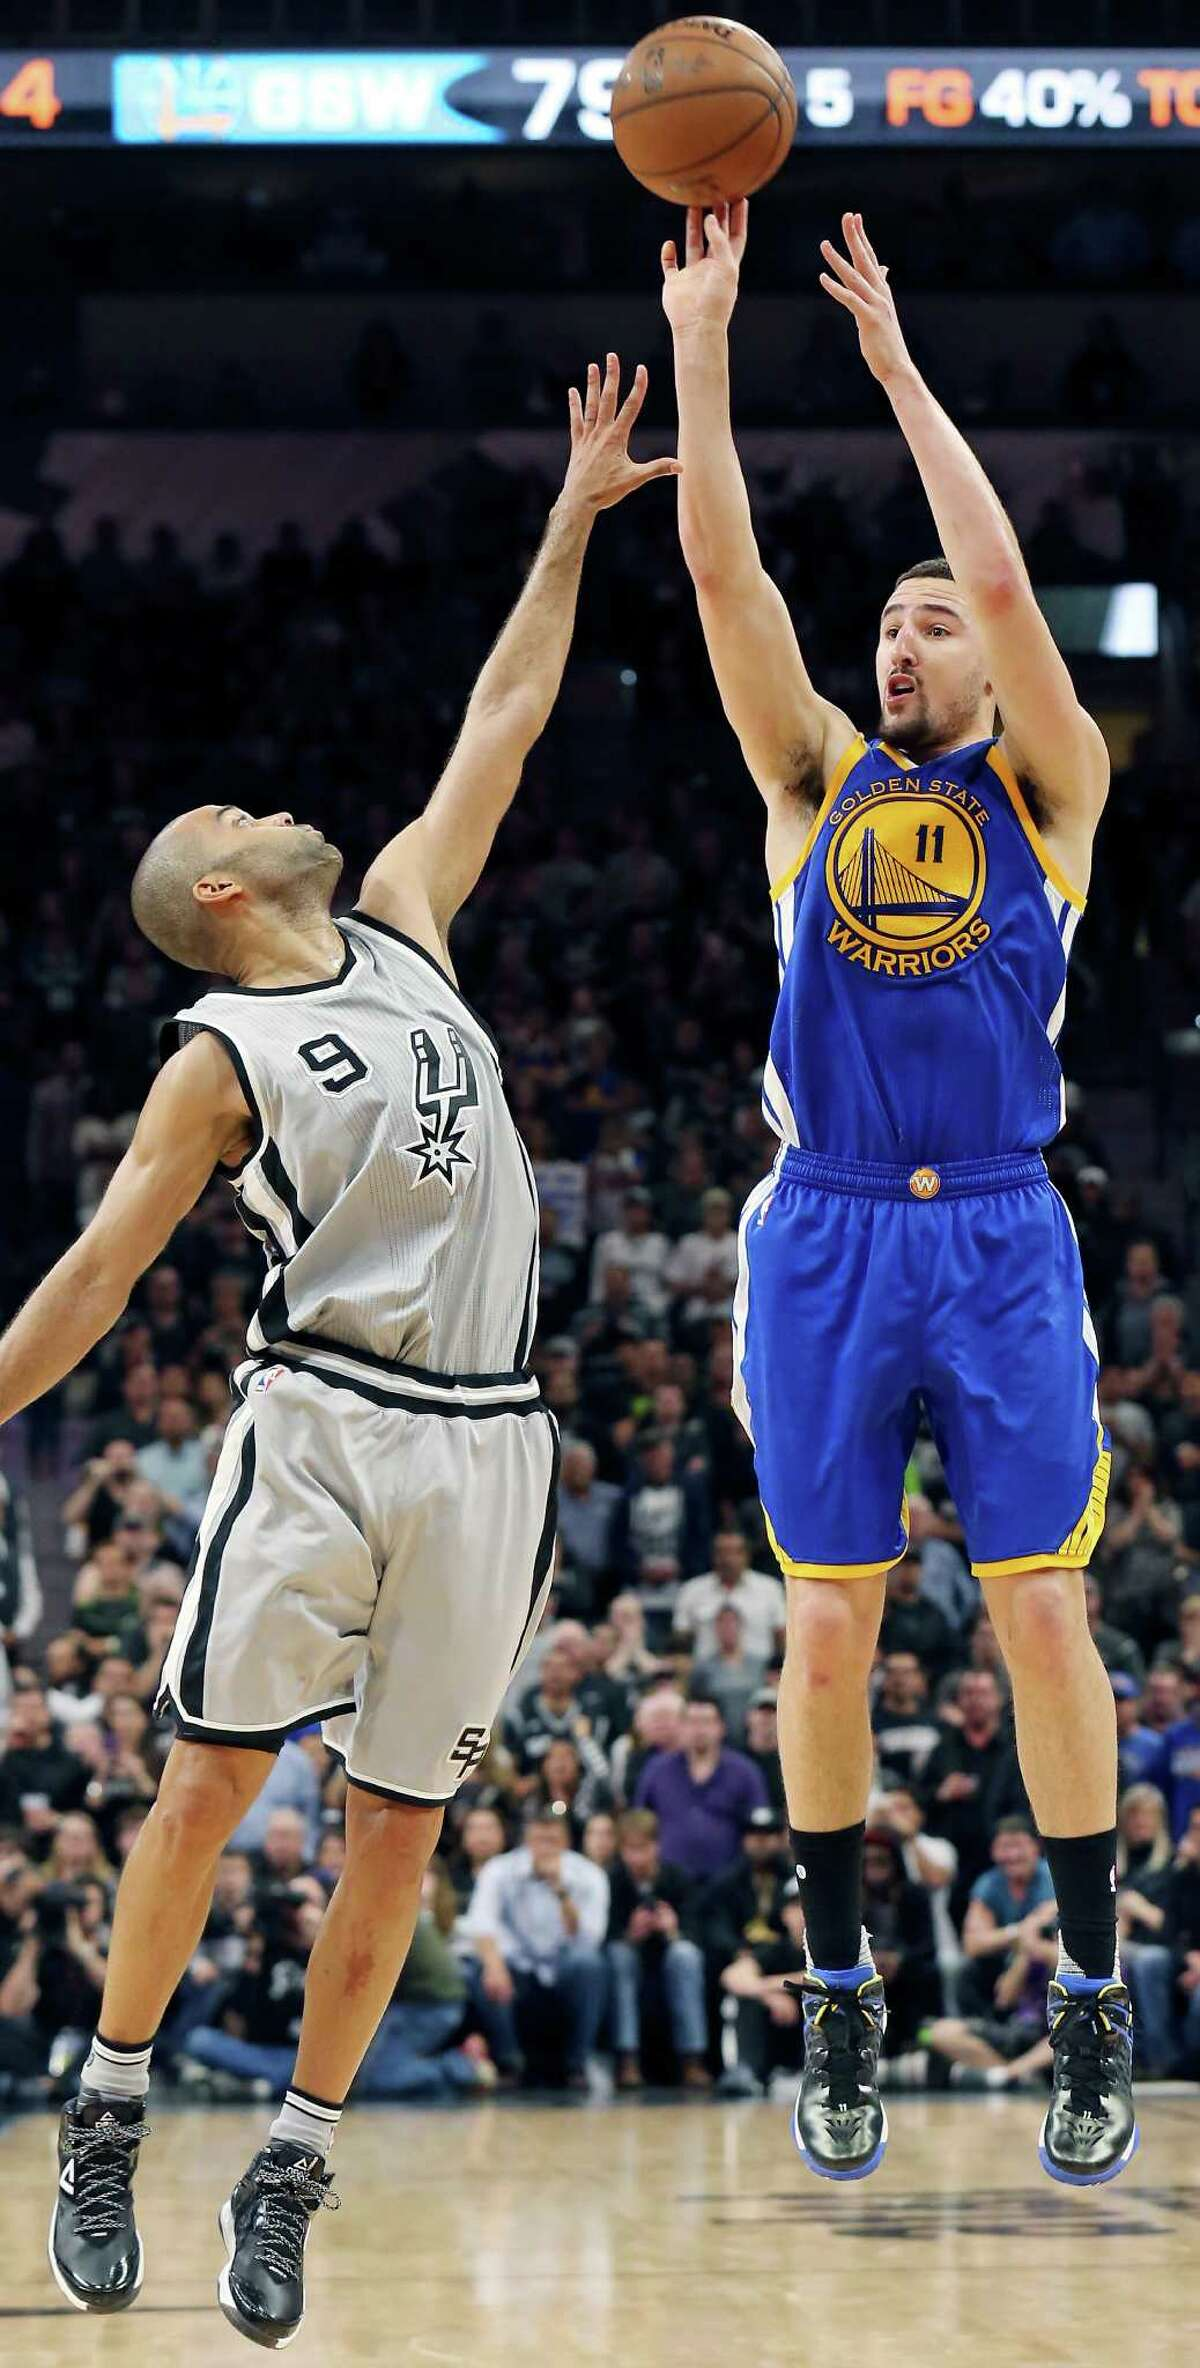 San Antonio Spurs' Tony Parker defends Golden State Warriors' Klay Thompson during second half action Saturday March 19, 2016 at the AT&T Center. The Spurs won 87-79.